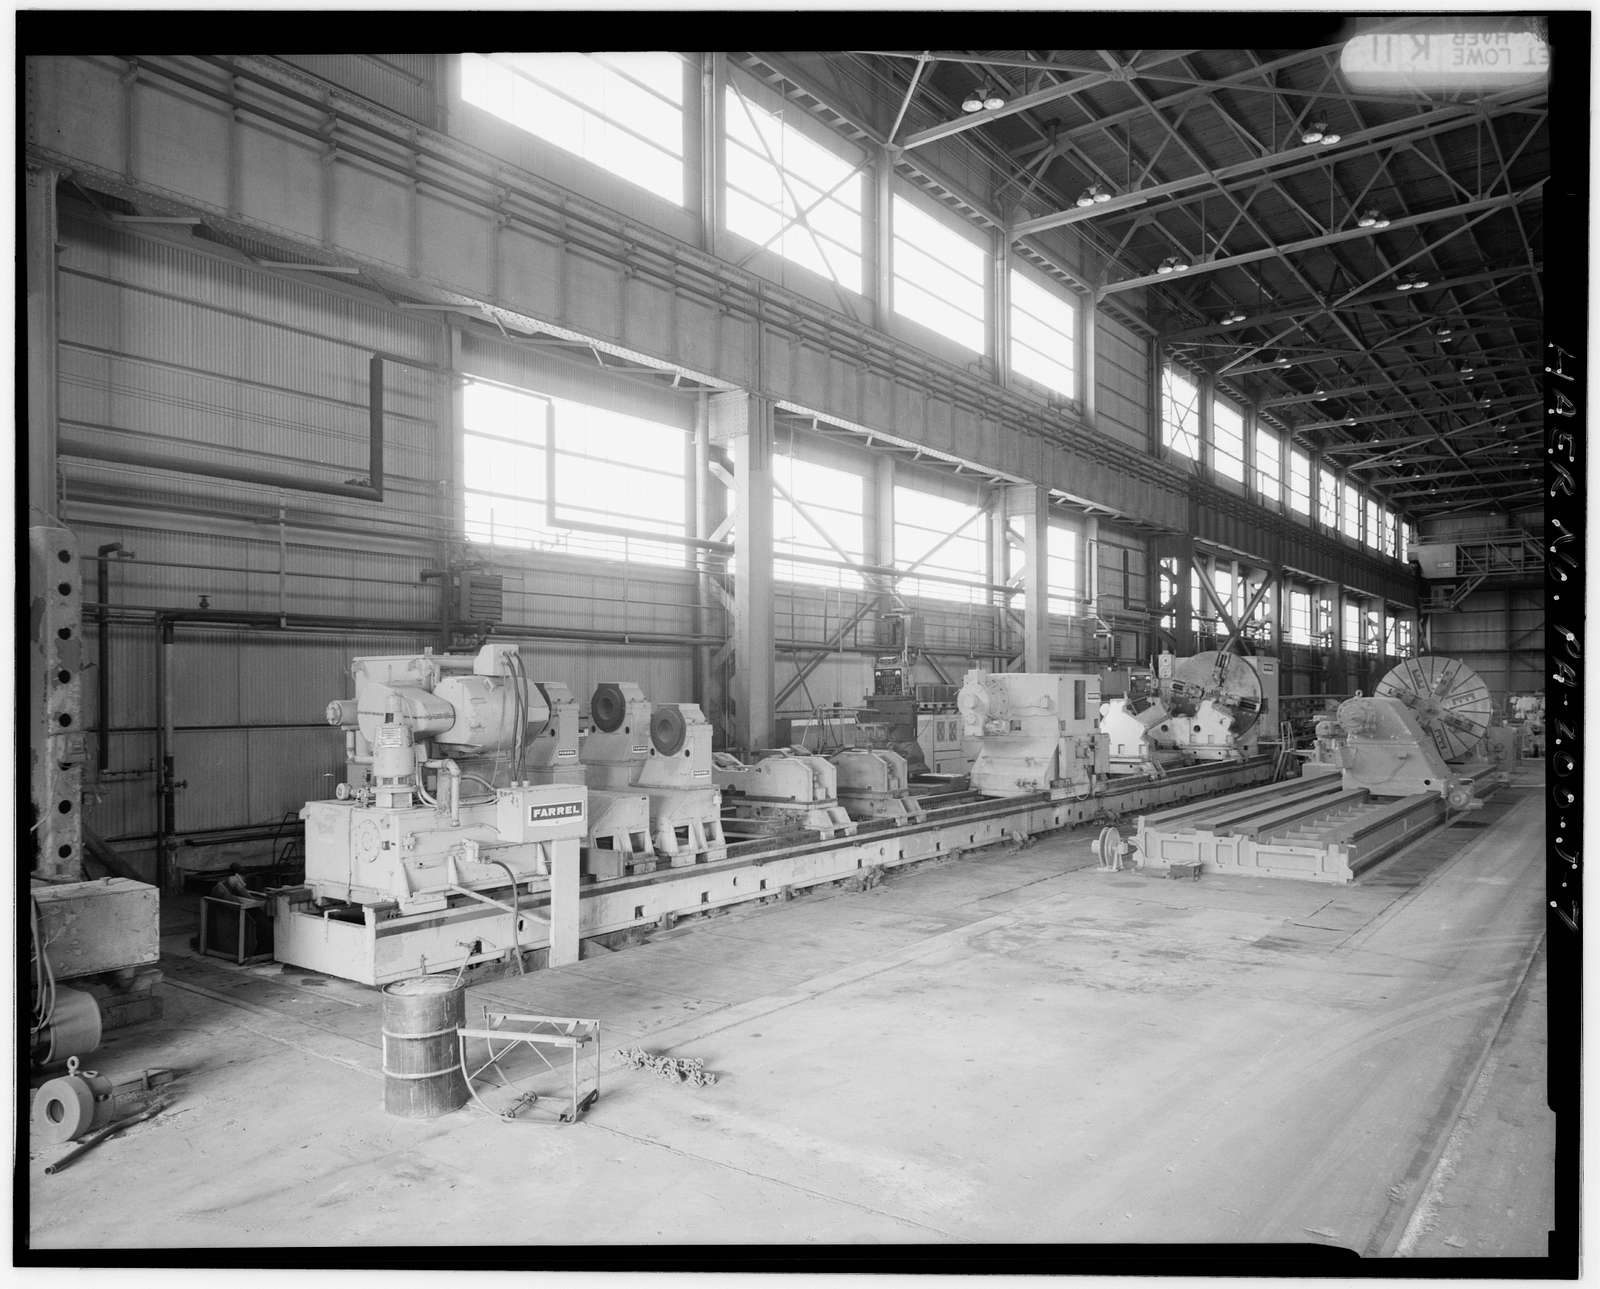 U.S. Steel Homestead Works, Machine Shop No. 2, Along Monongahela River, Homestead, Allegheny County, PA